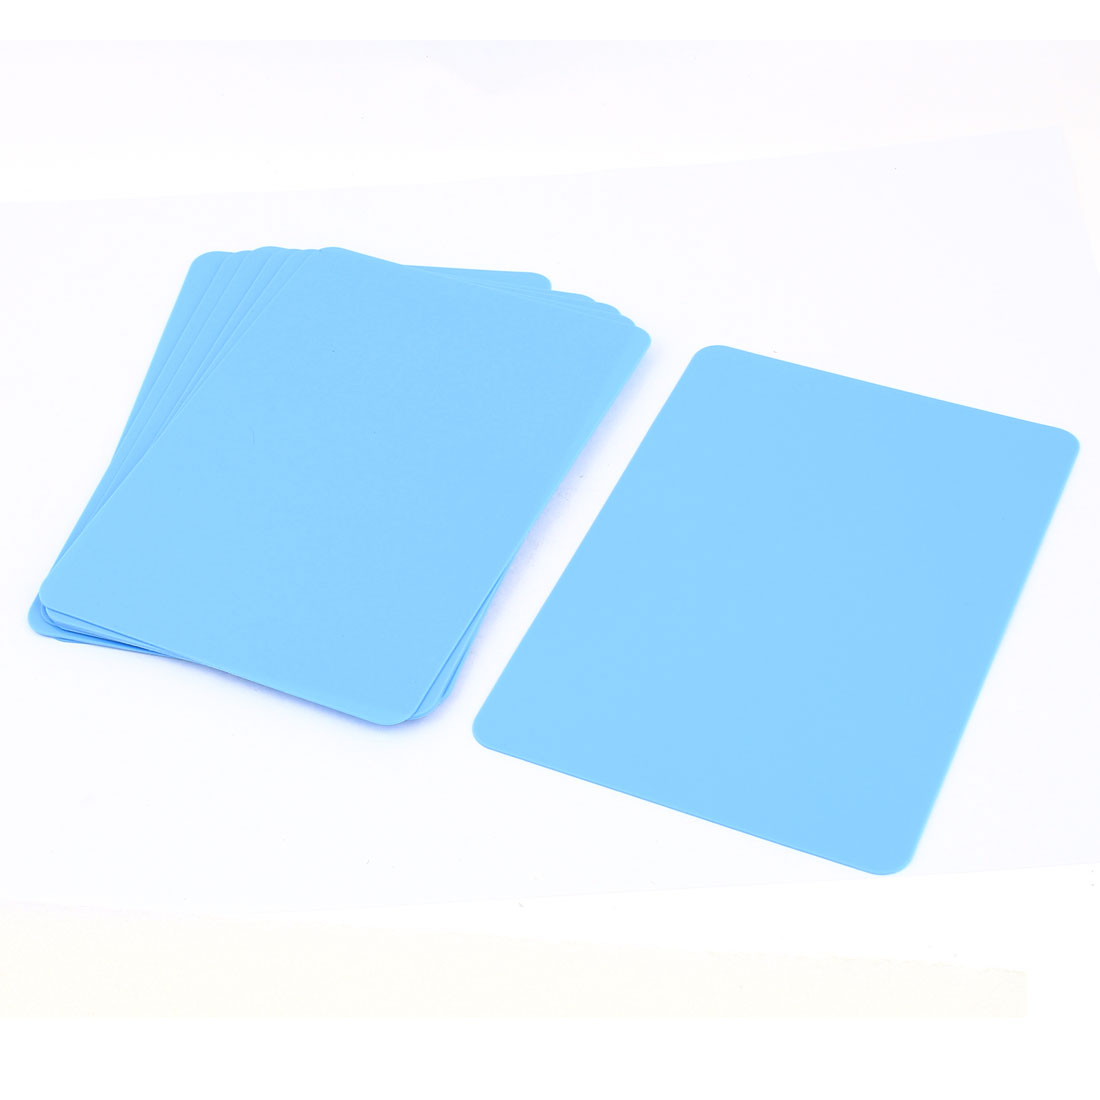 10 Pcs Blue Rectangle Shaped Plastic Paper Writing Boards 172mmx122mm